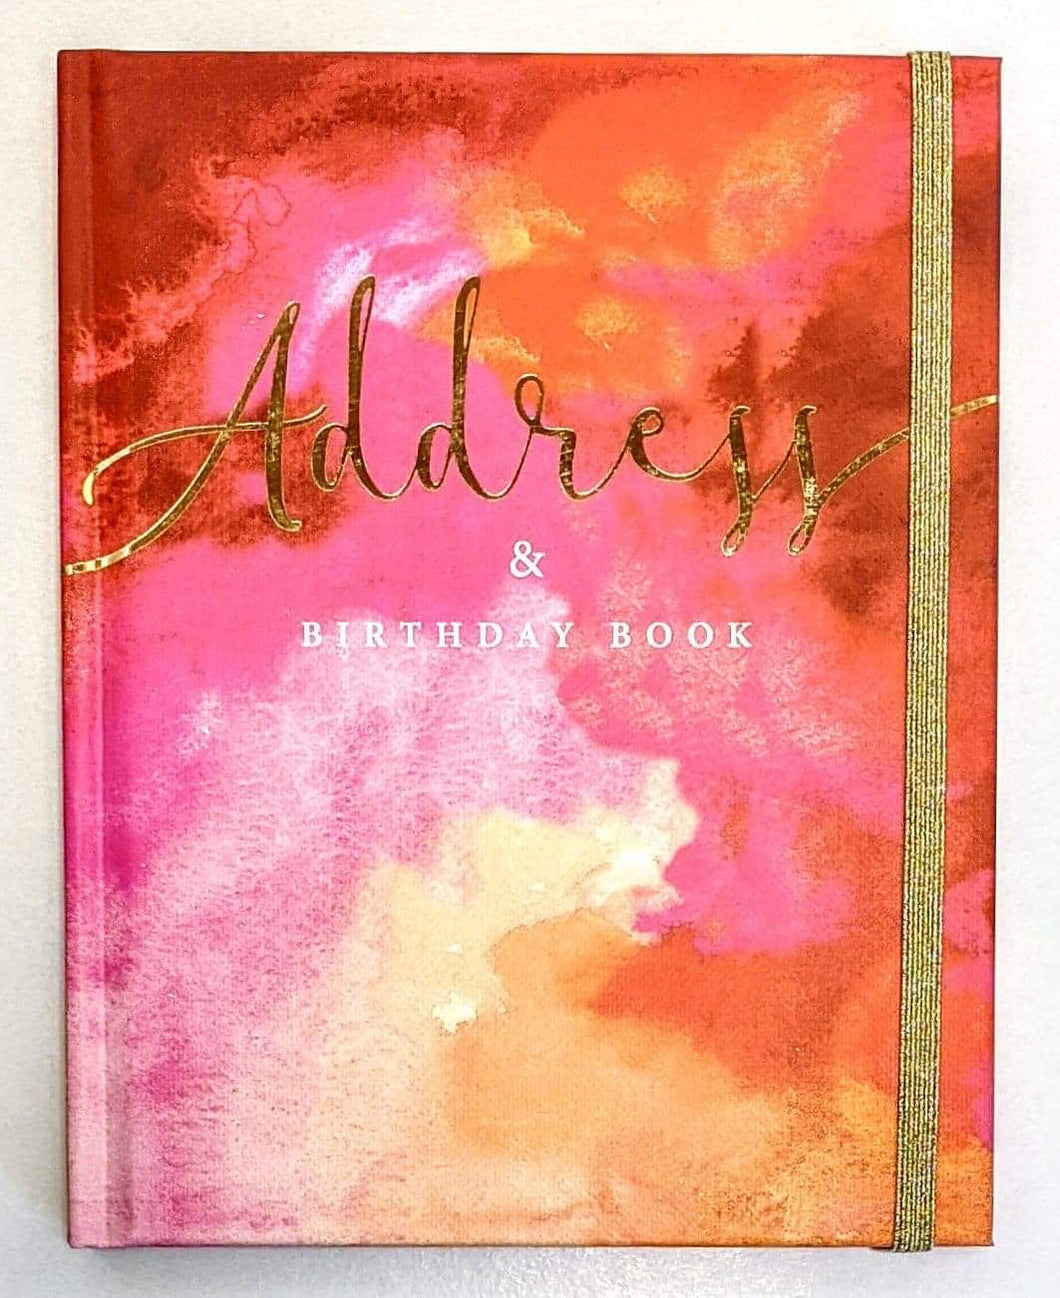 Address and Birthday Notebook